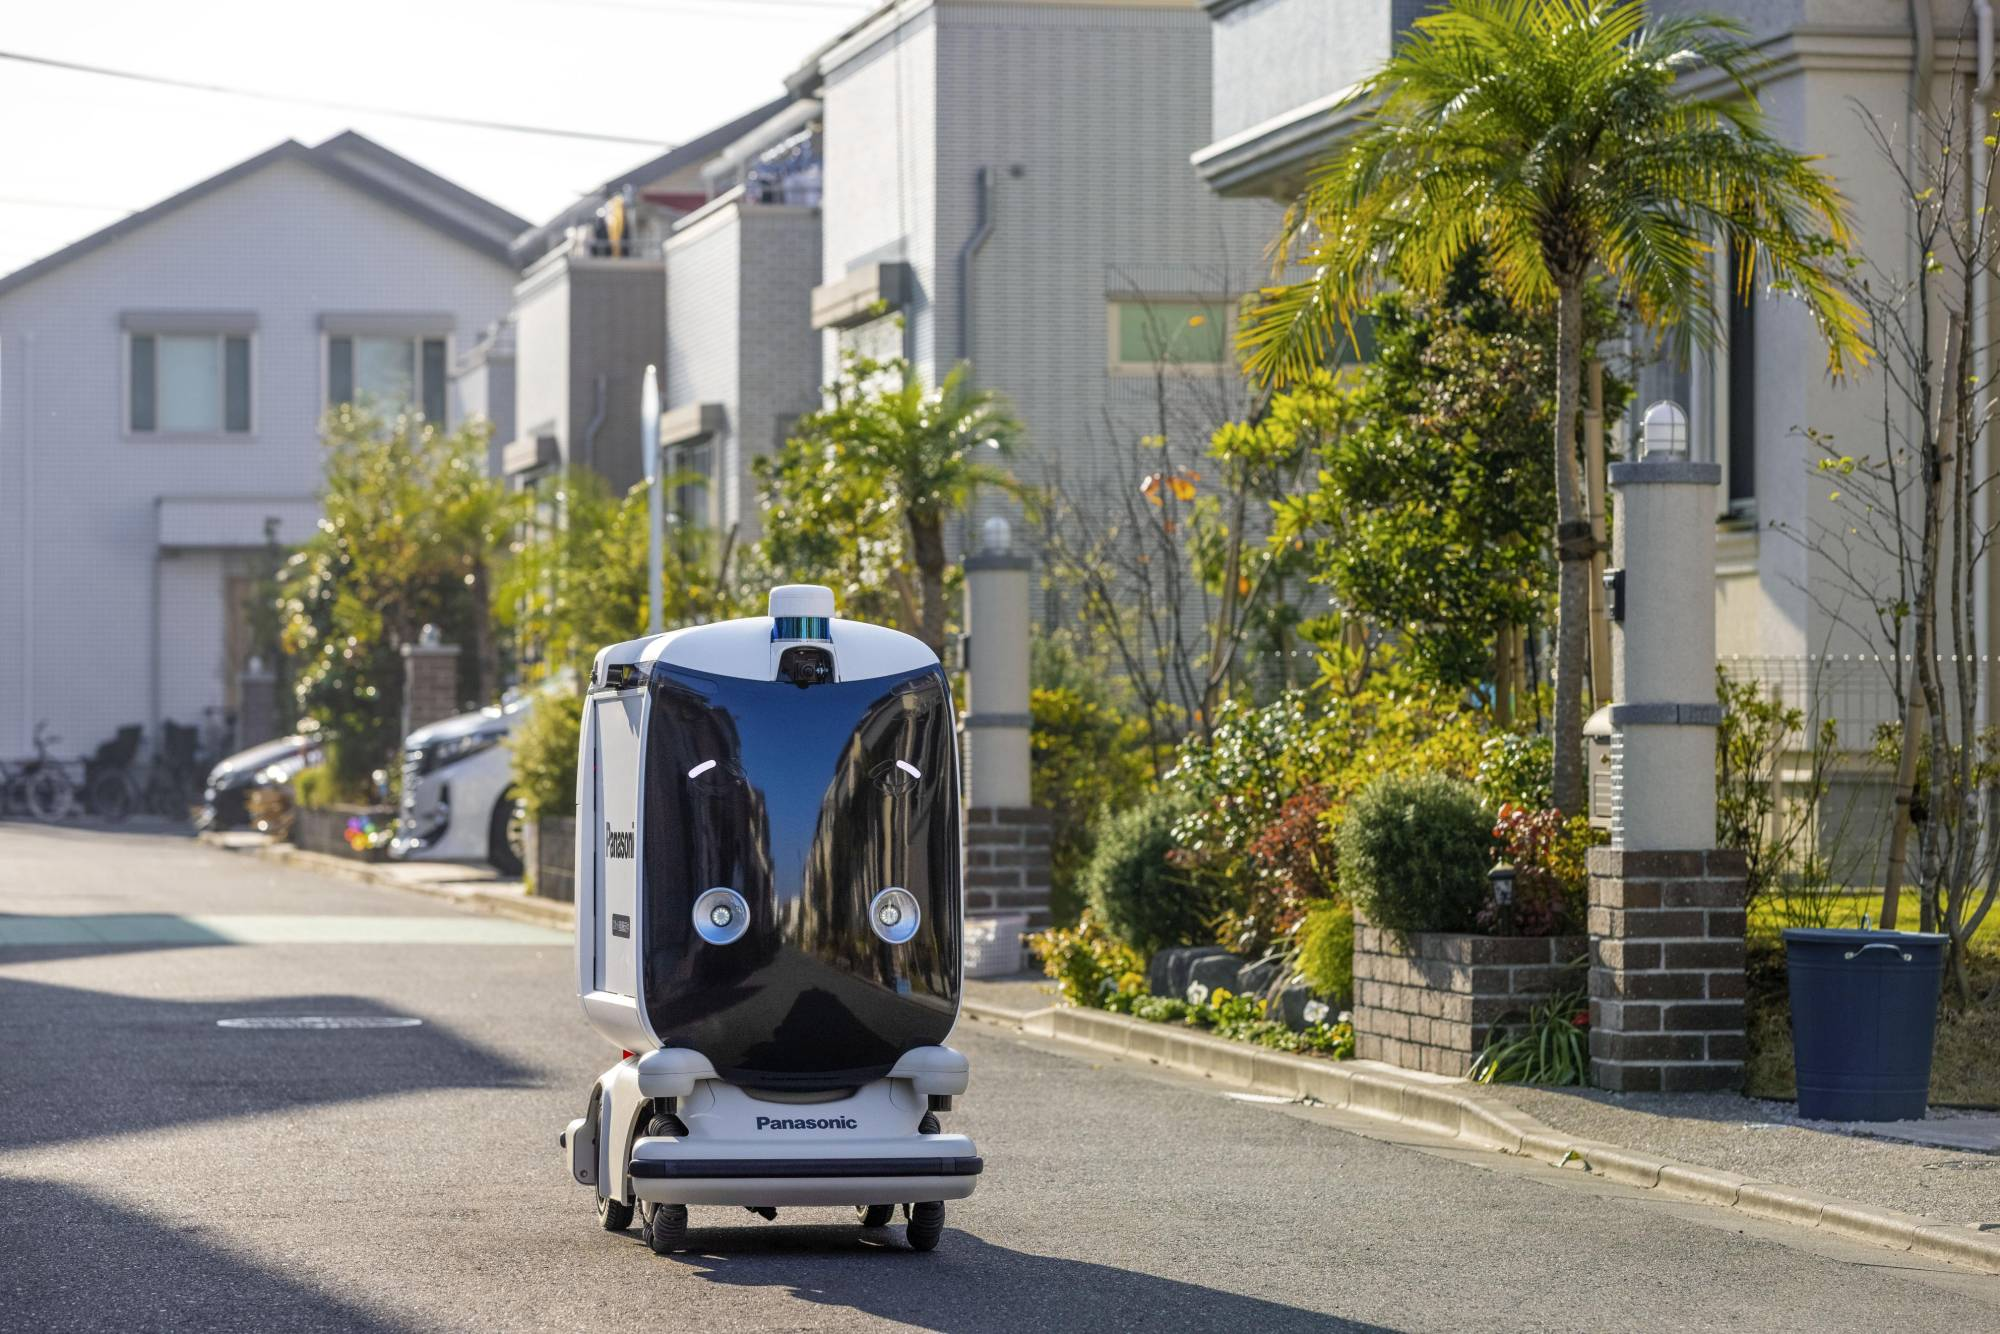 Panasonic to trial self-driving home delivery robot in February